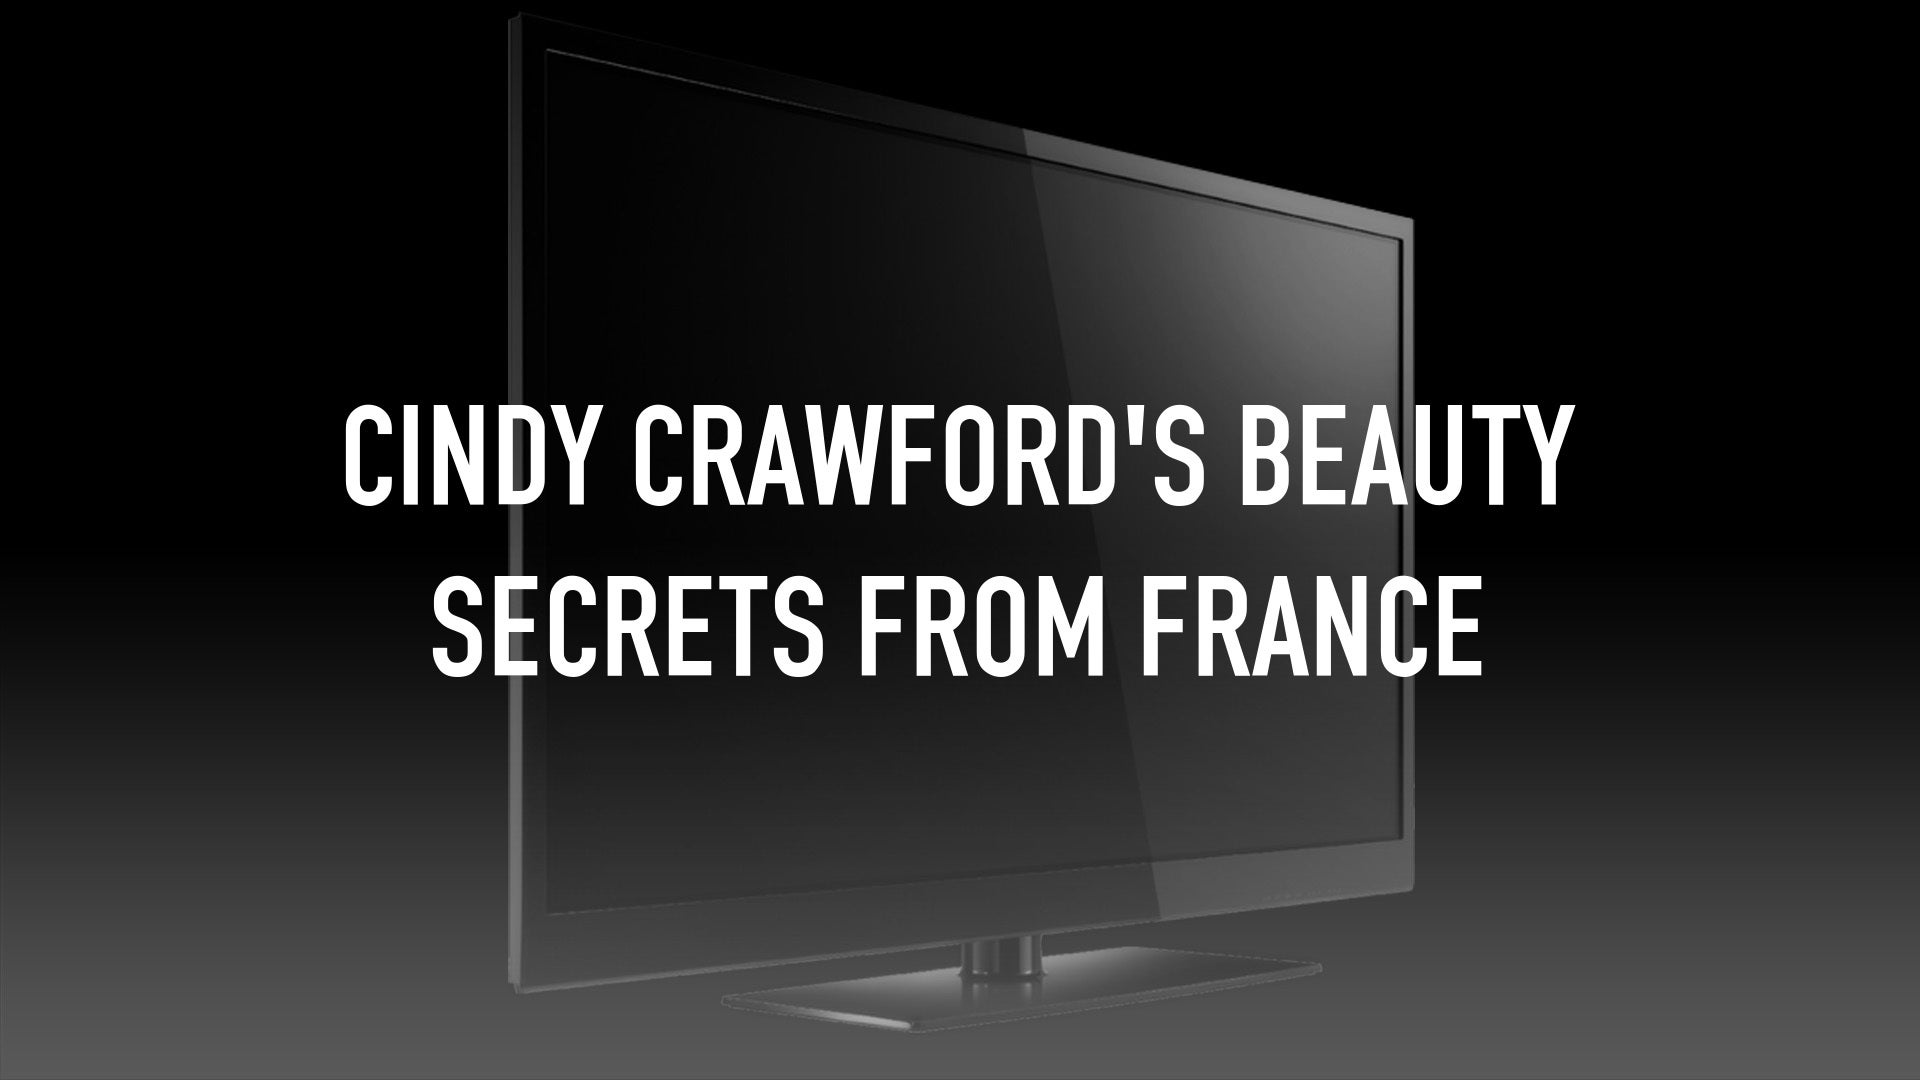 Cindy Crawford's Beauty Secrets from France